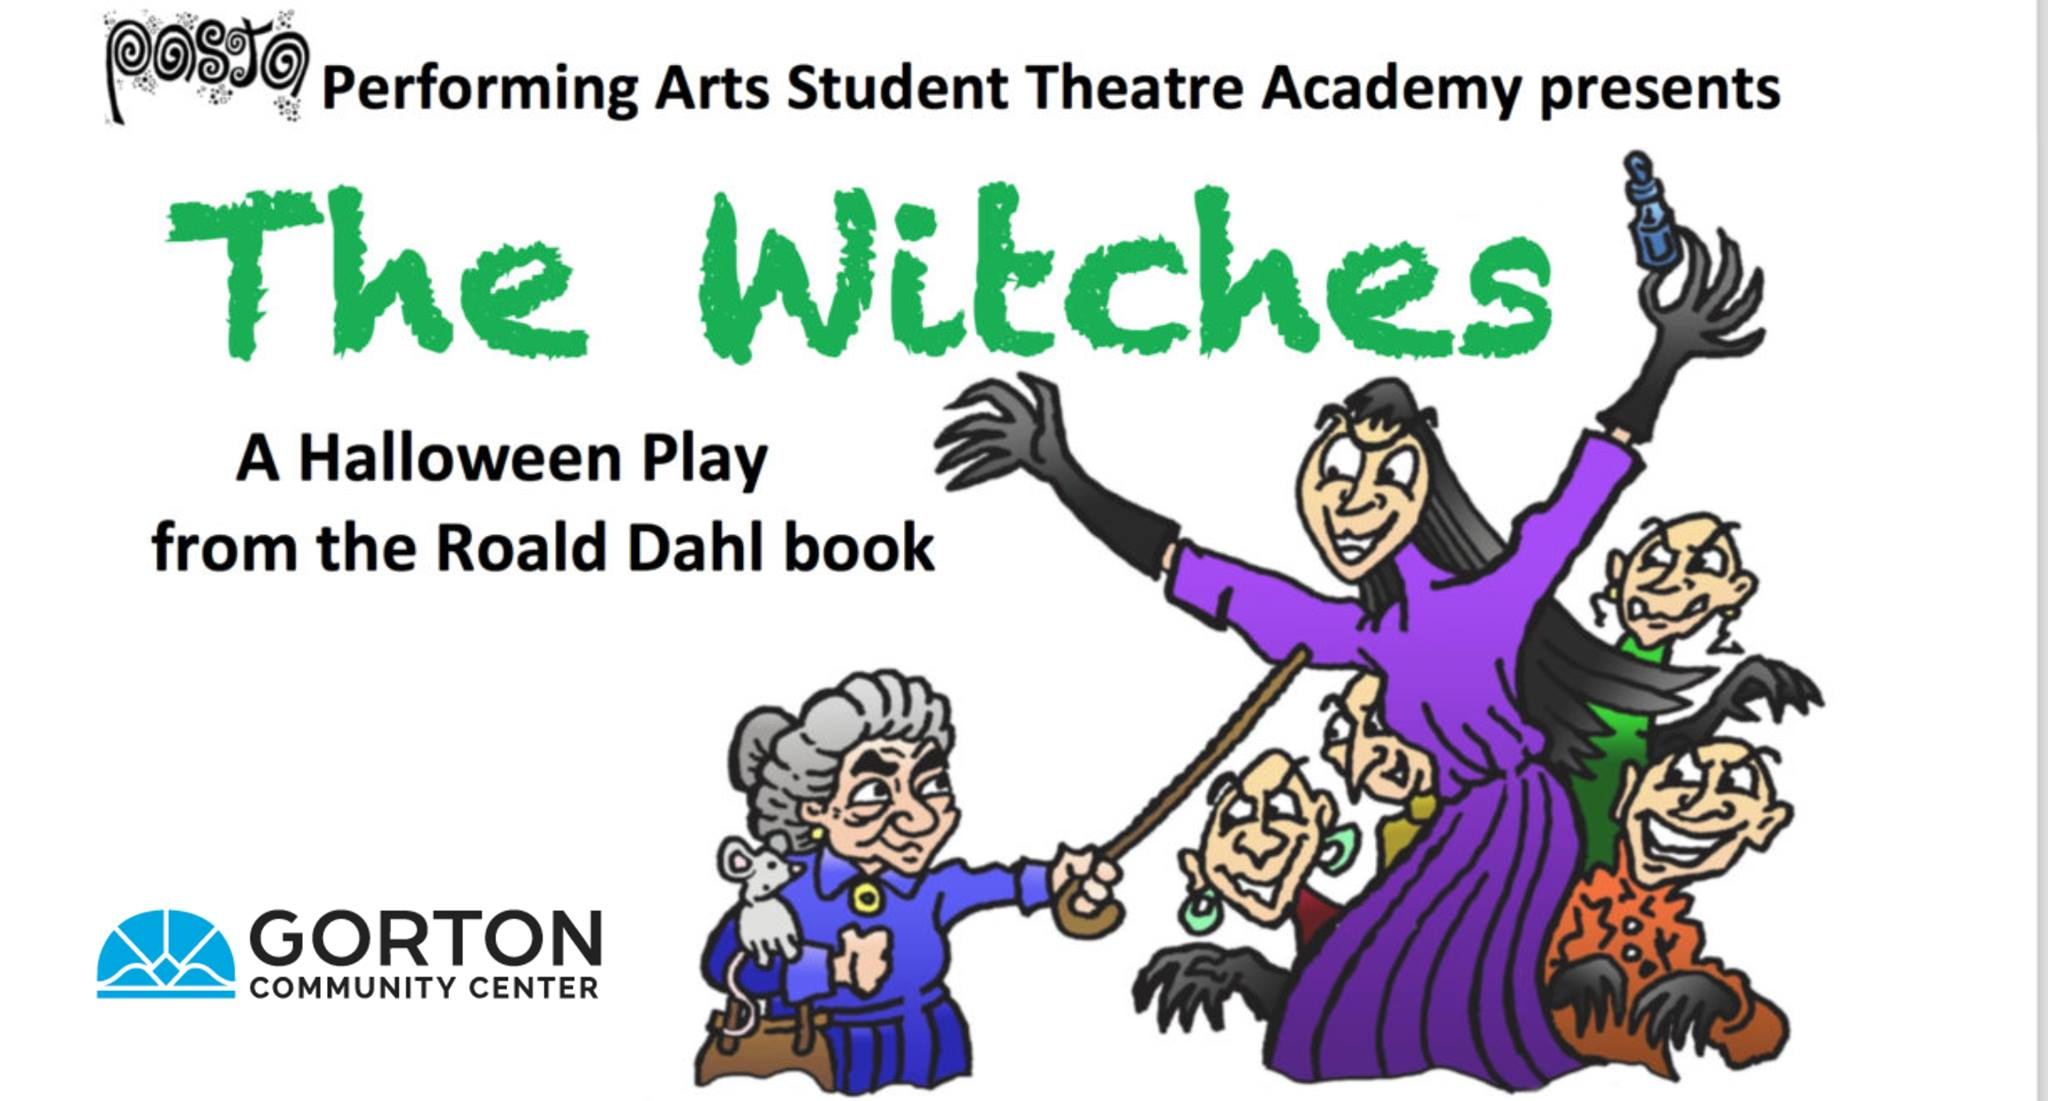 PASTA Performs Roald Dahl's The Witches at Gorton Community Center